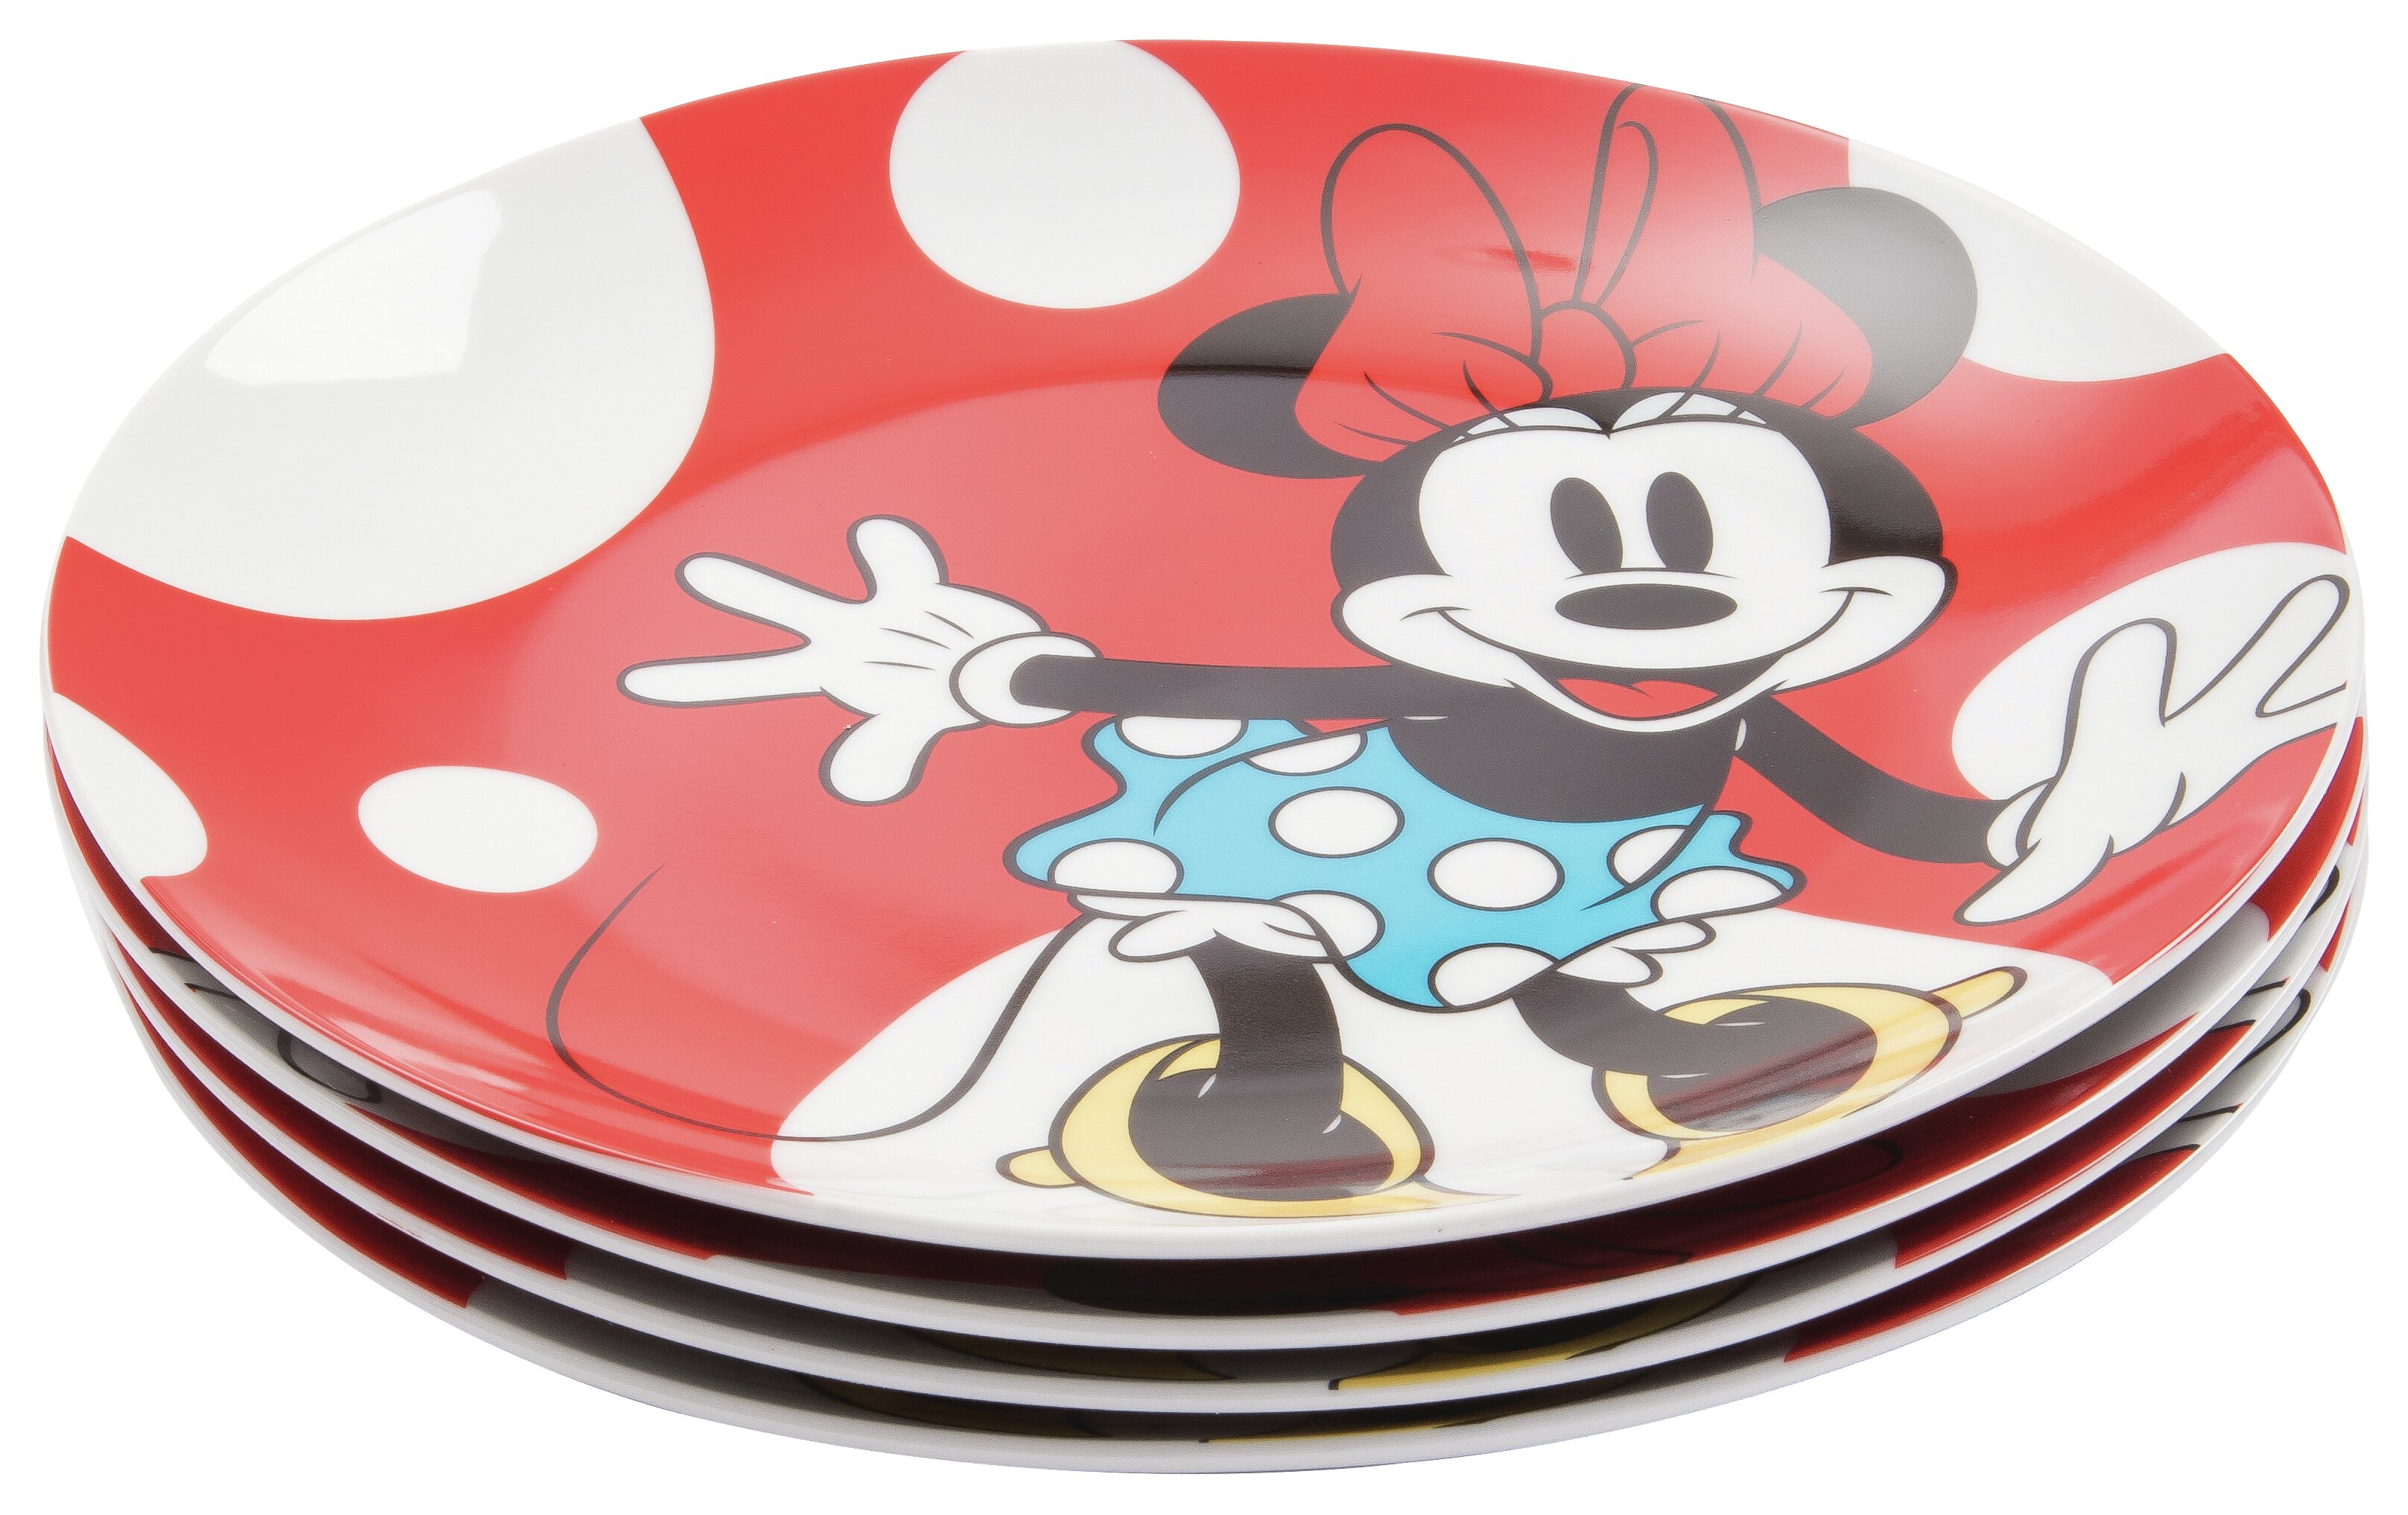 sc 1 st  Wayfair & Vandor Disney Minnie Mouse Ceramic 10.5